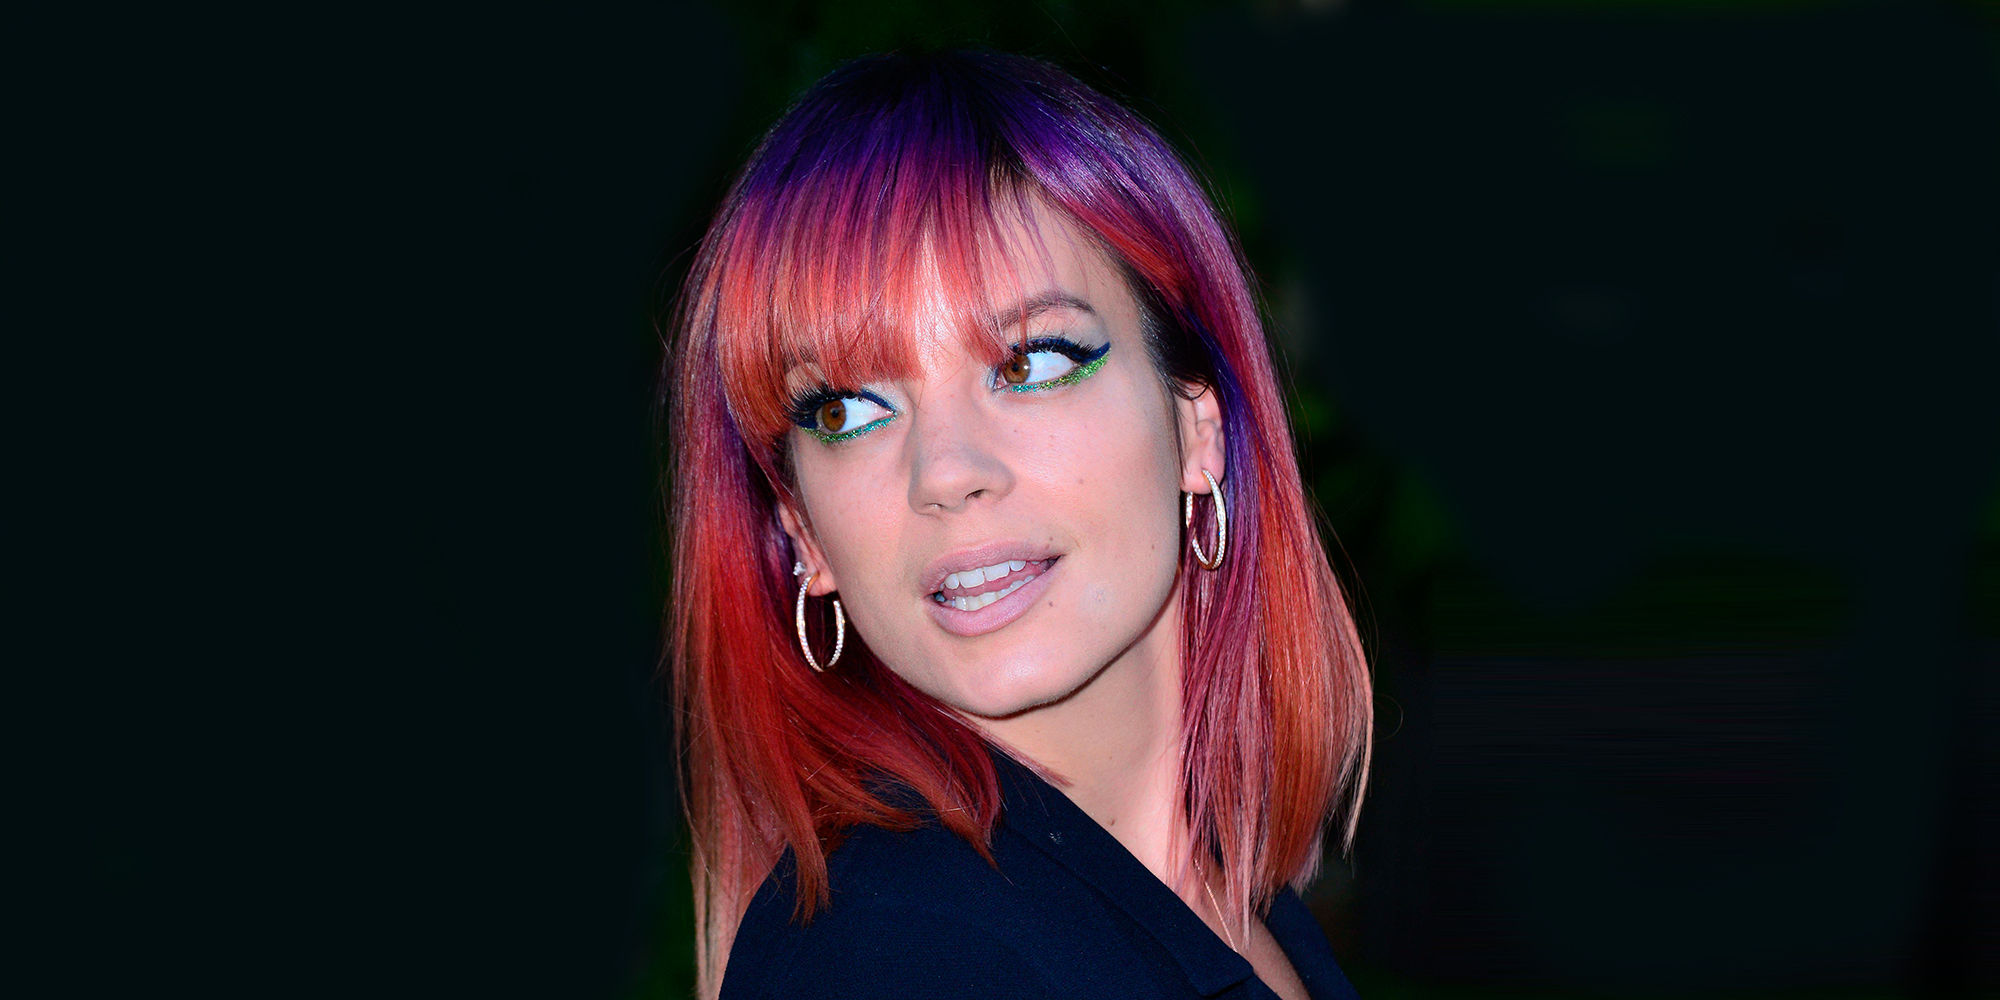 lily allen i would change my look to please my man